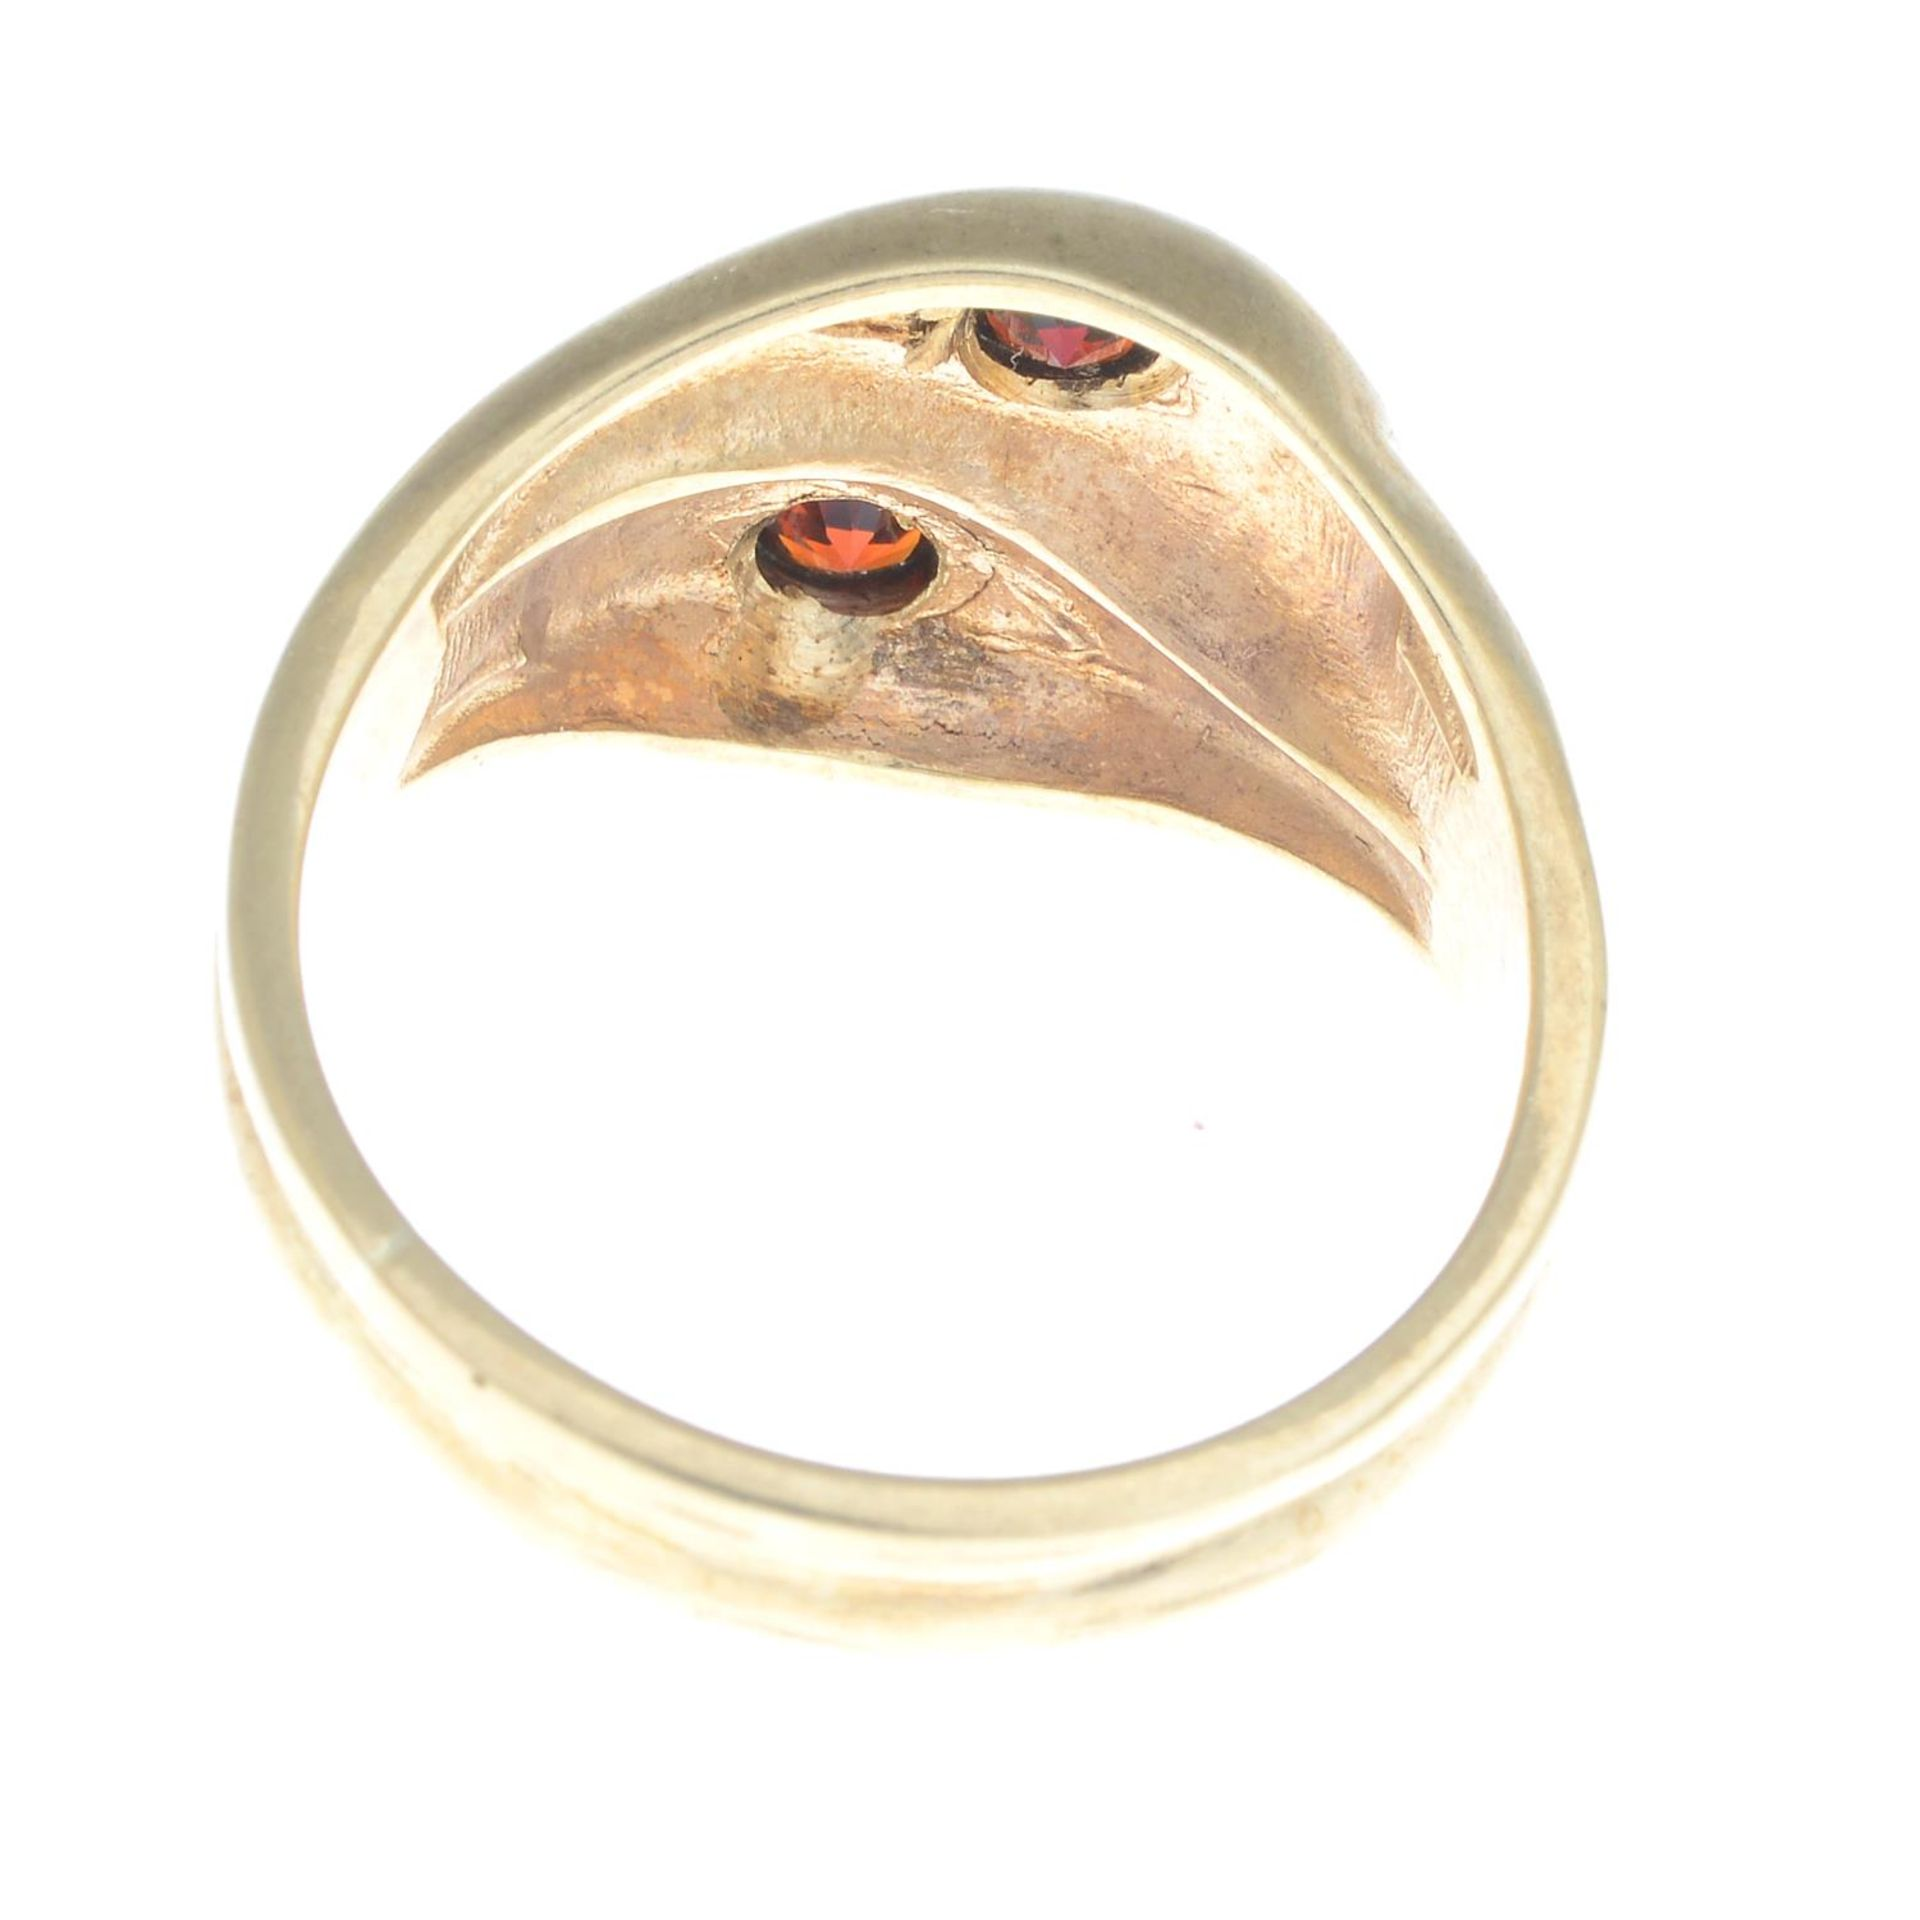 A 9ct gold snake ring, with red gem crest highlights.Hallmarks for 9ct gold. - Bild 2 aus 3